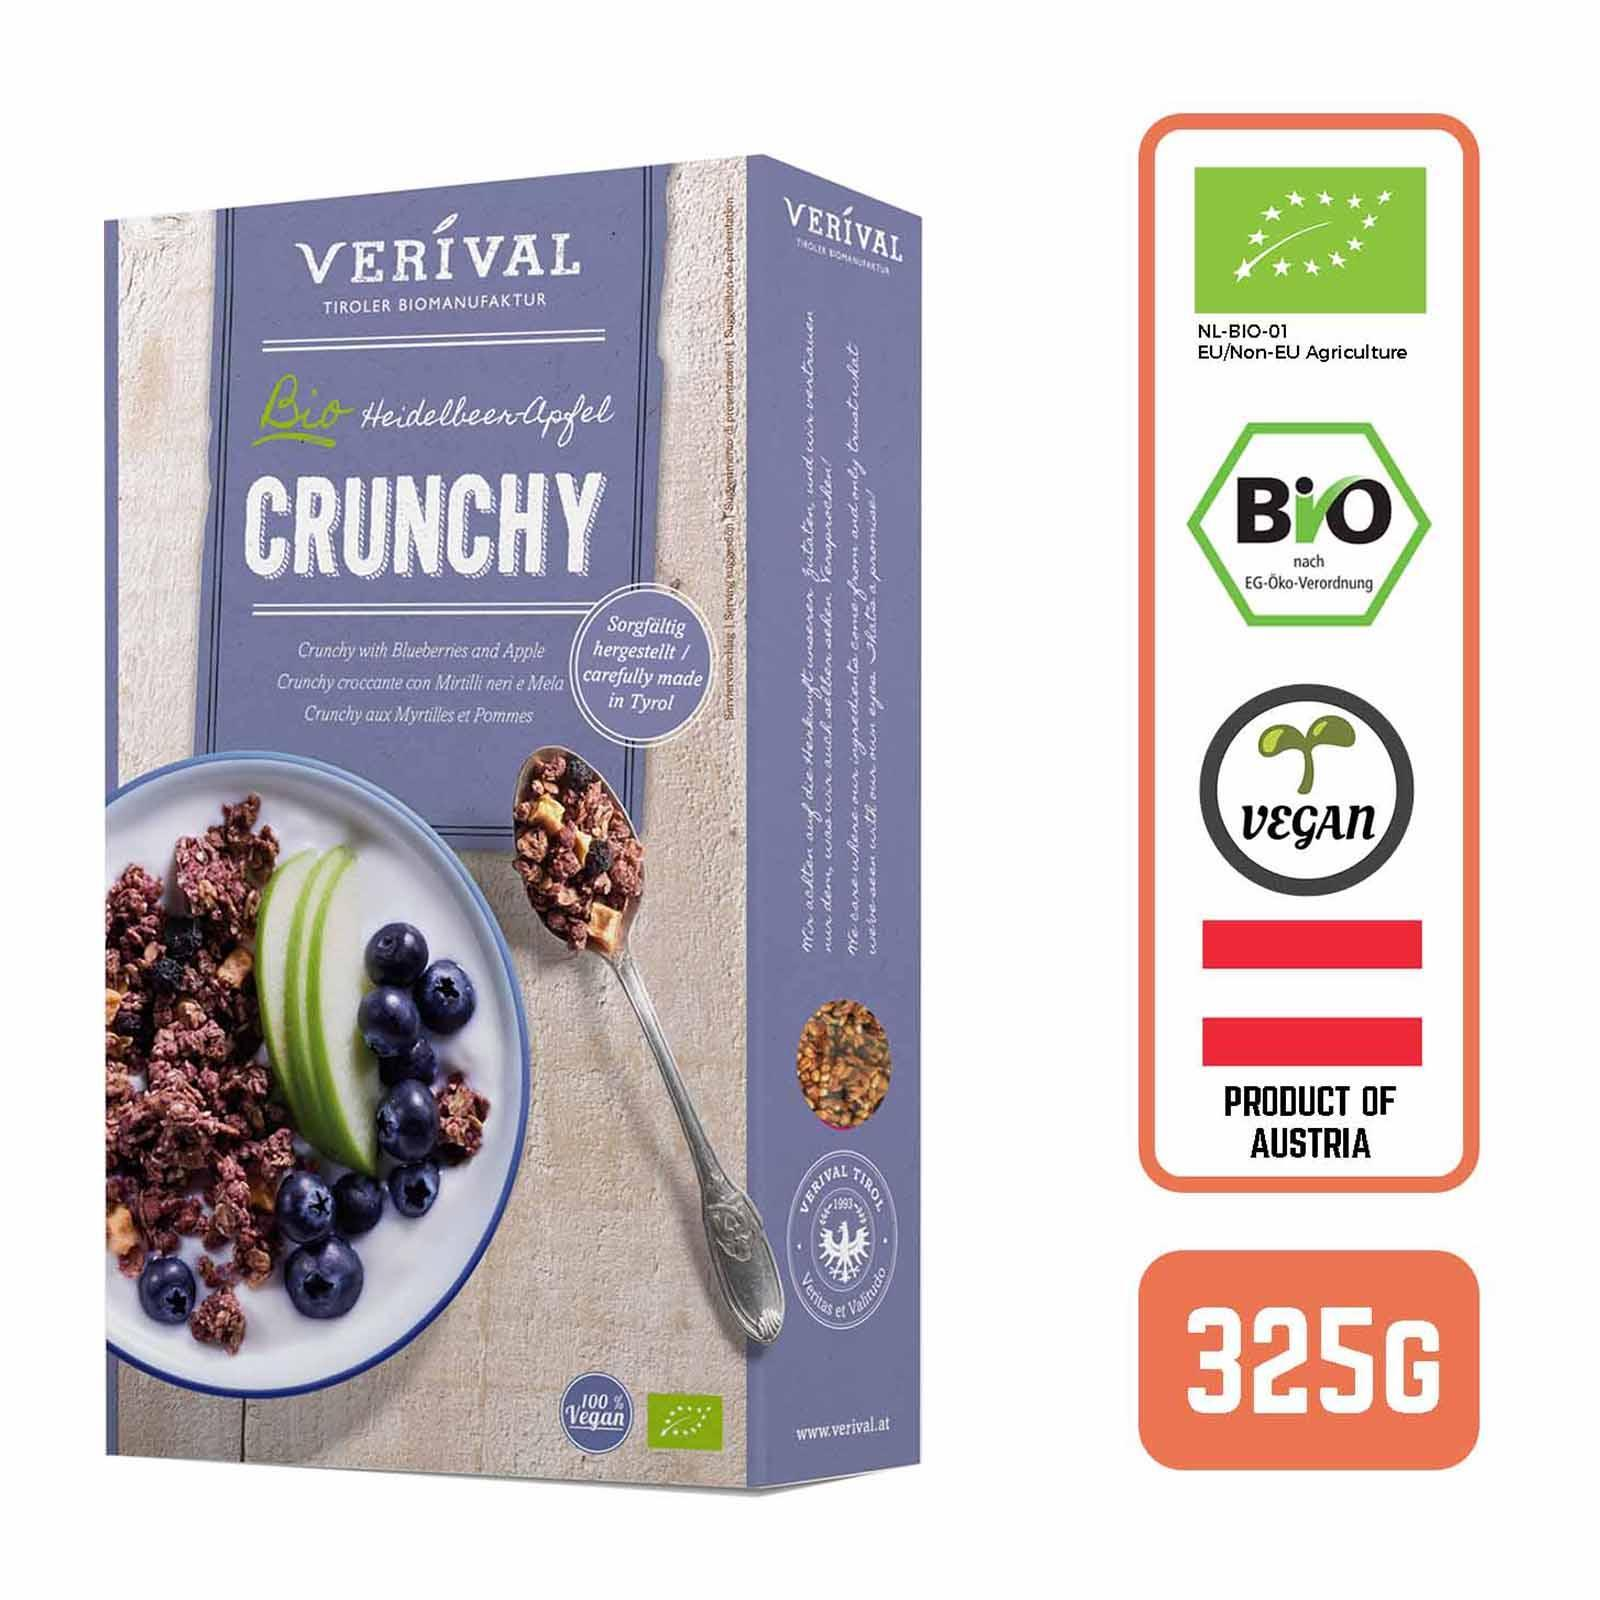 Verival Organic Austrian Crunchy Granola Muesli with Blueberries and Apple